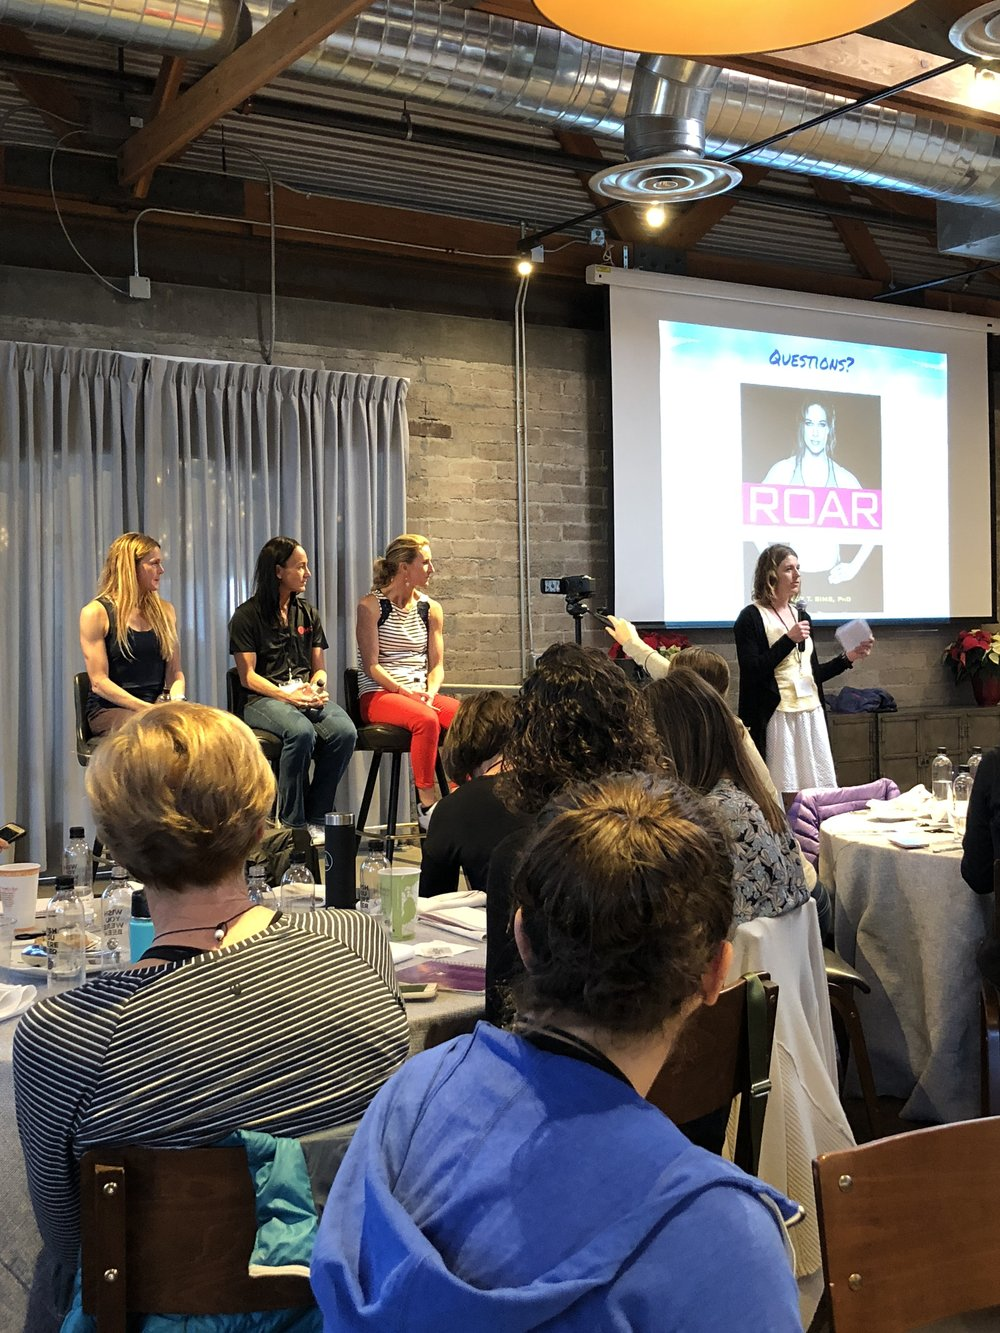 From left, Dr. Stacy Sims, Marilyn Chychota, Meredith Kessler, and moderator Tenille Hoogland.